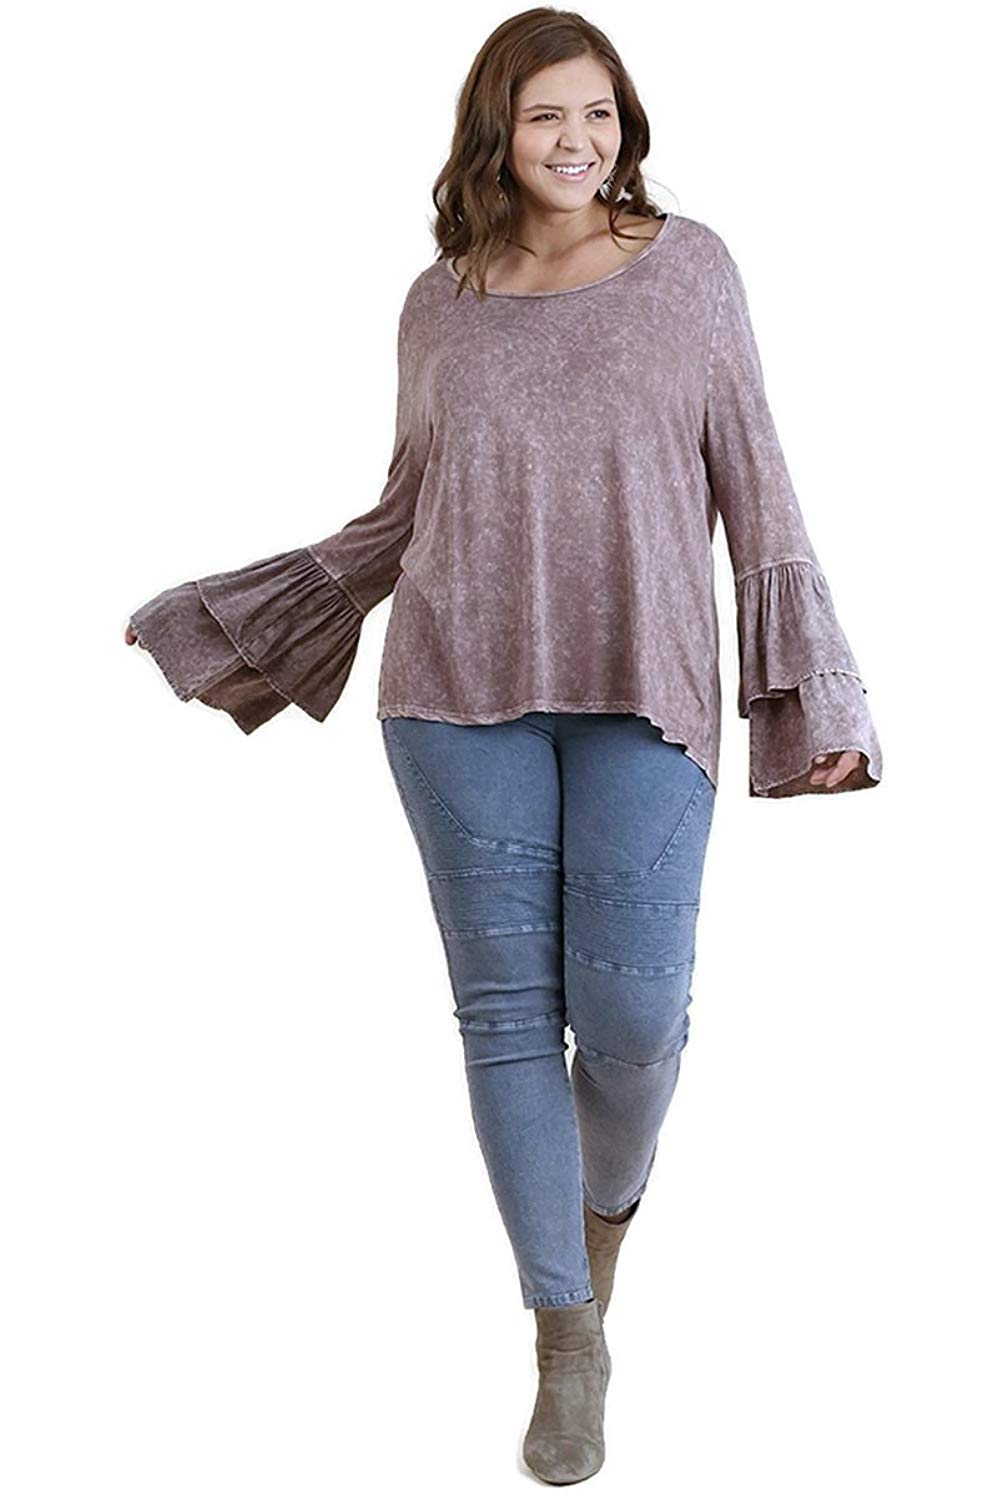 Umgee Women's Mineral Washed Layered Ruffled Bell Sleeve Tunic Top Plus Size